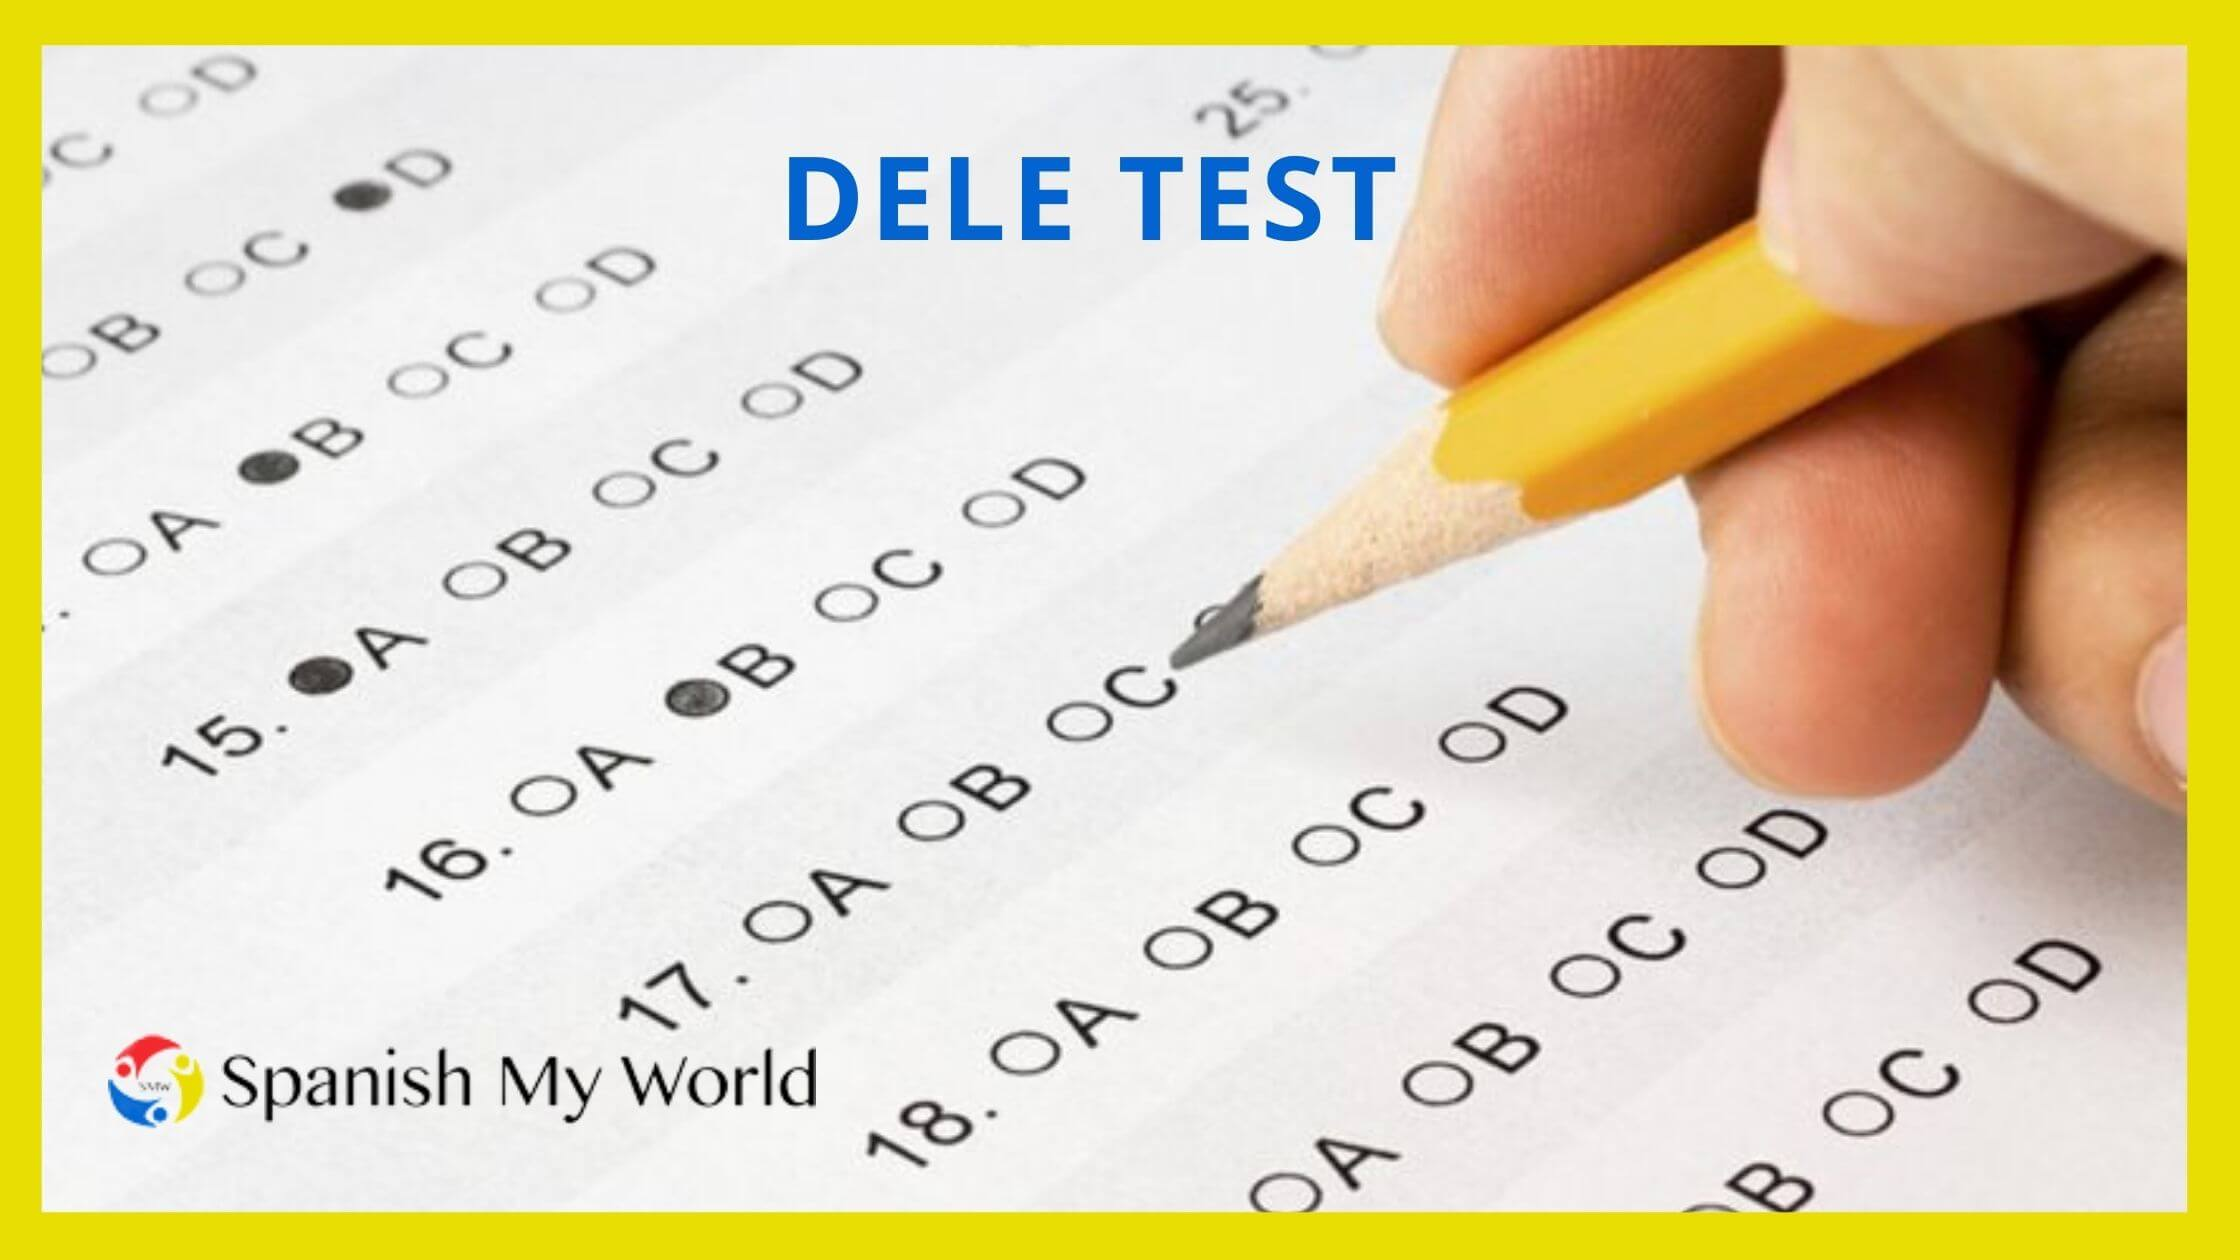 Keys to pass the DELE exam